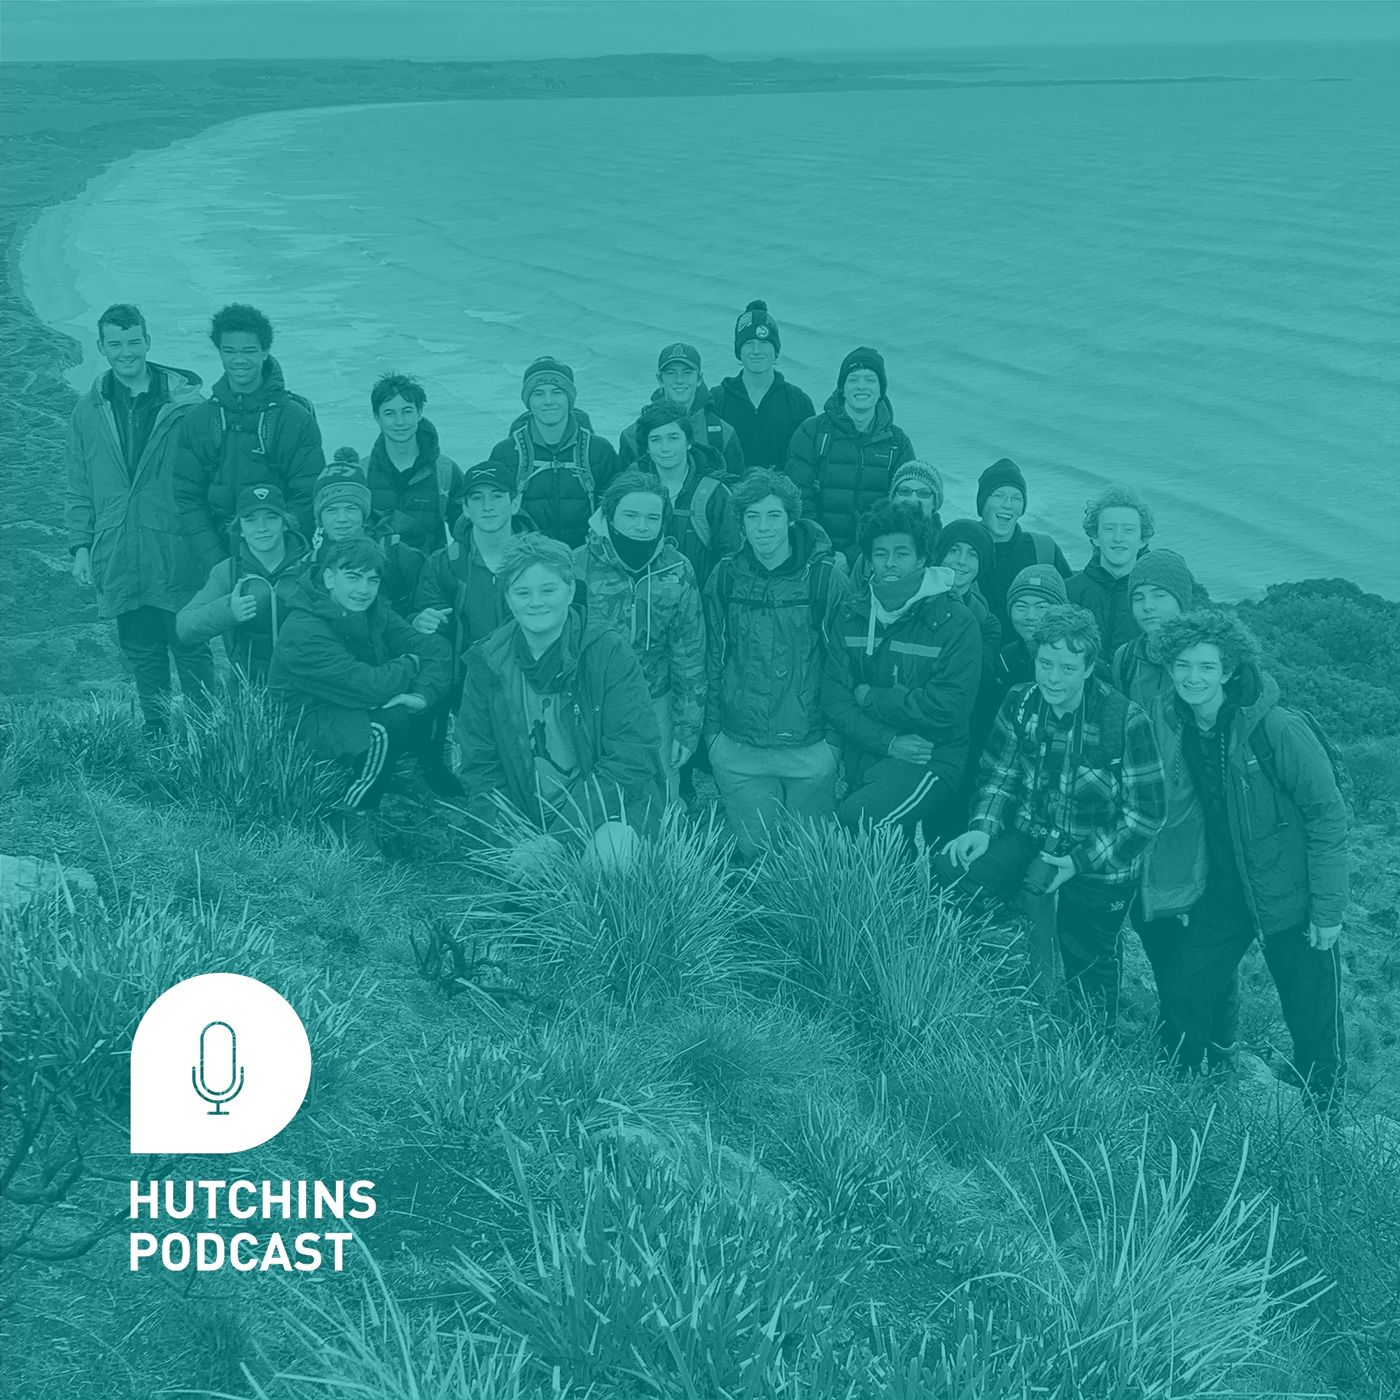 Hutchins Podcast – Power of 9 Tiwi group 2021